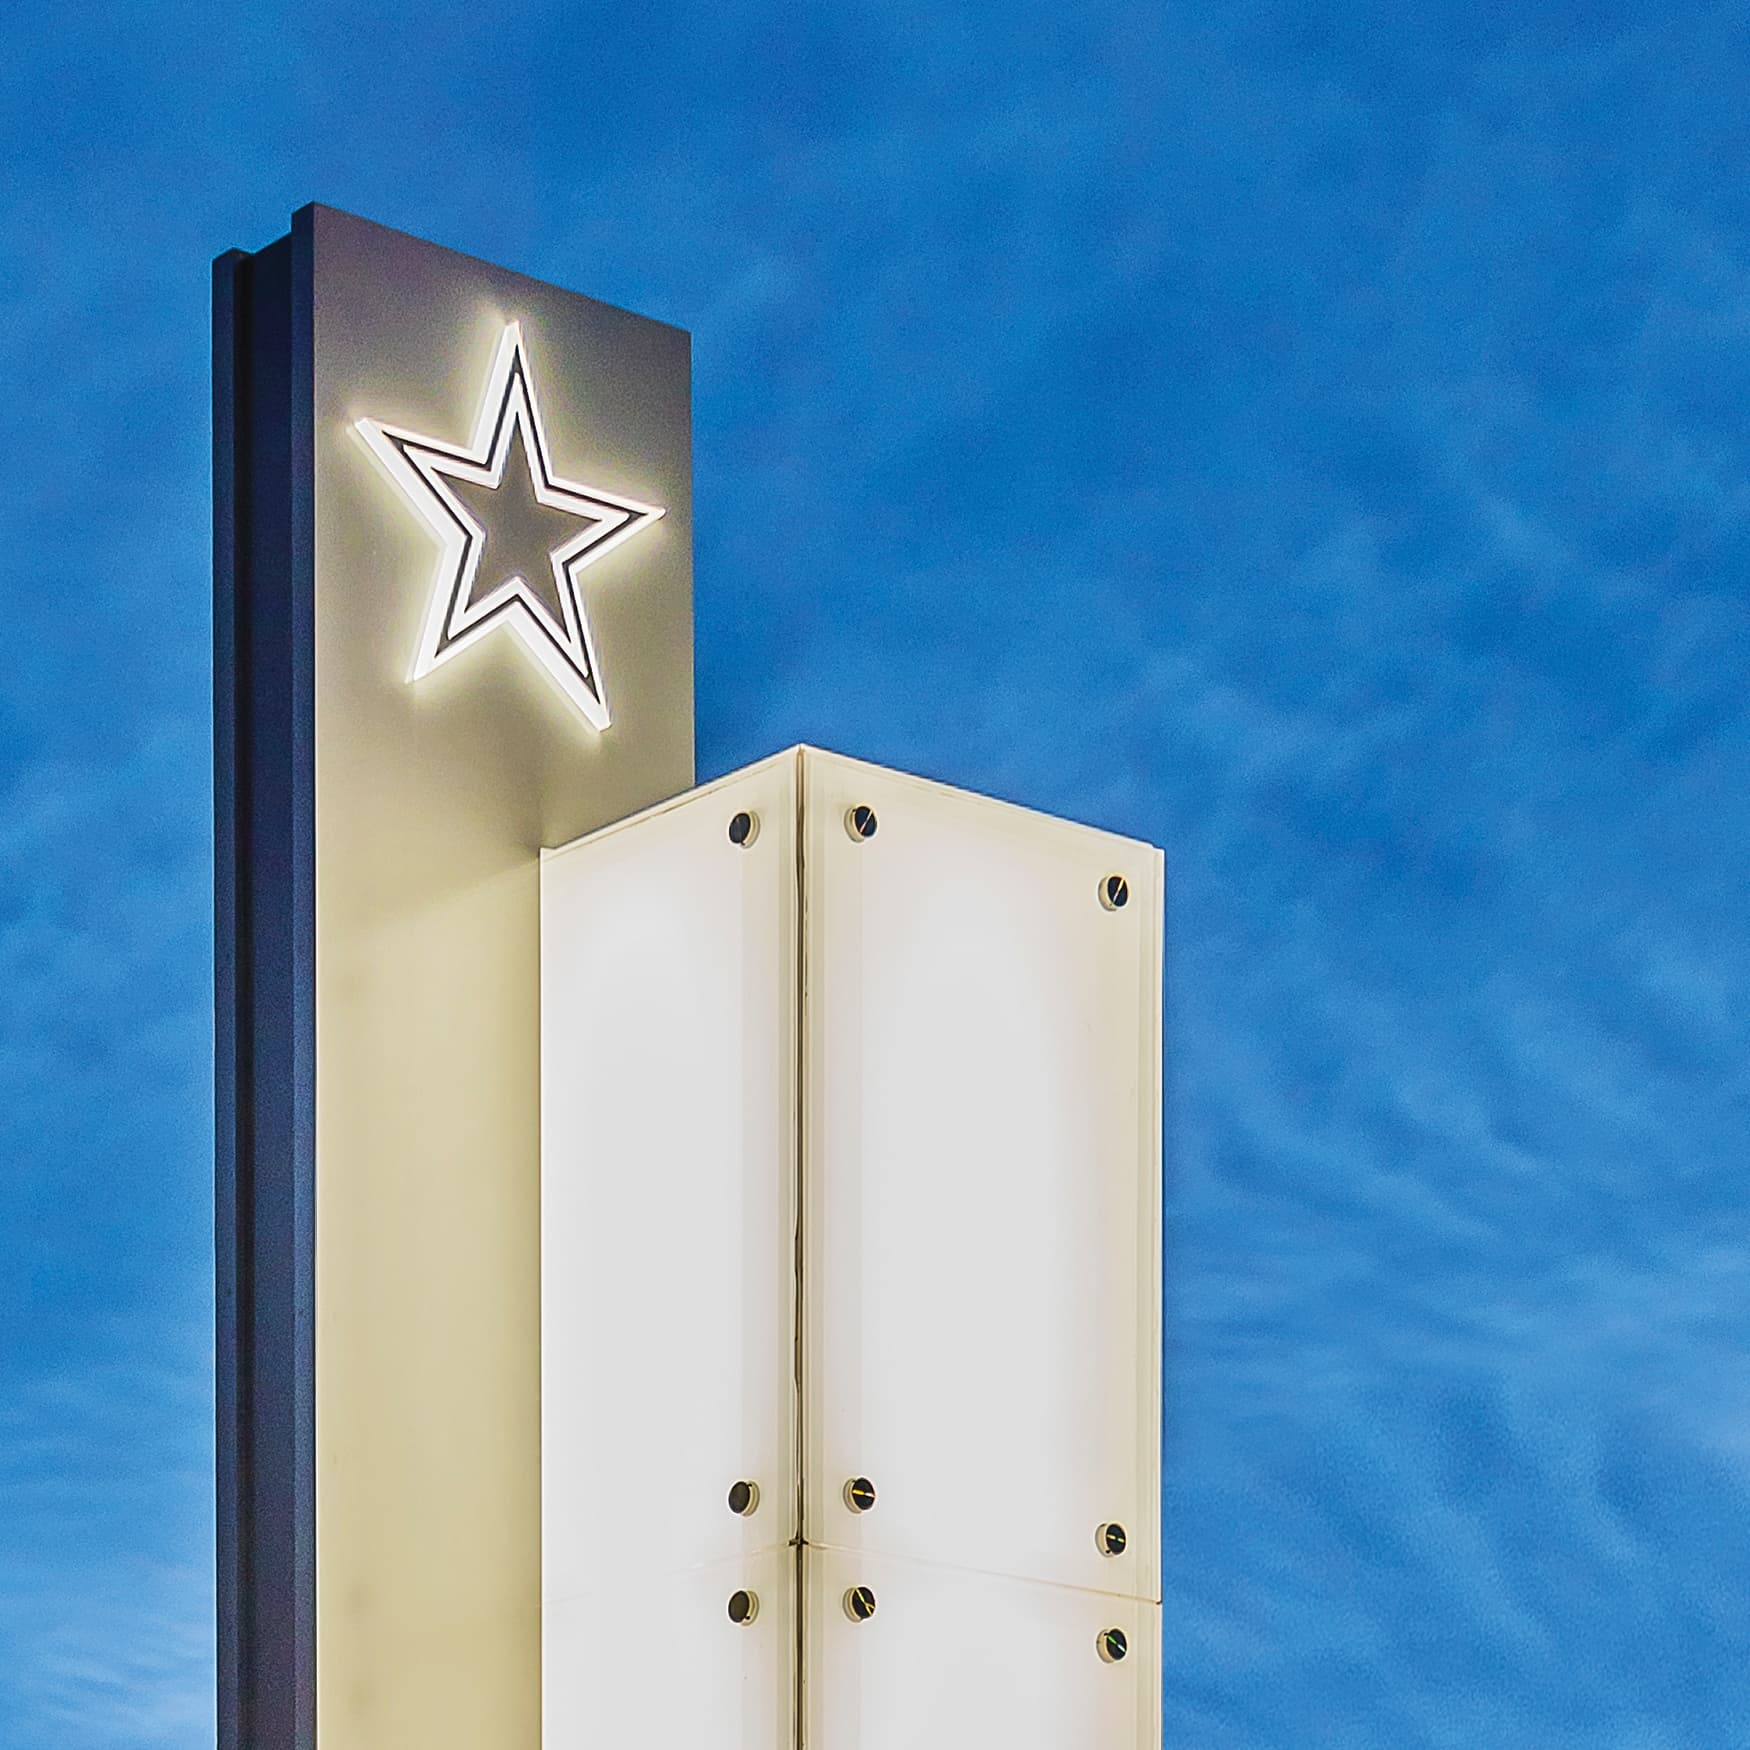 Dallas Cowboys logo illuminated pylon signage at dusk